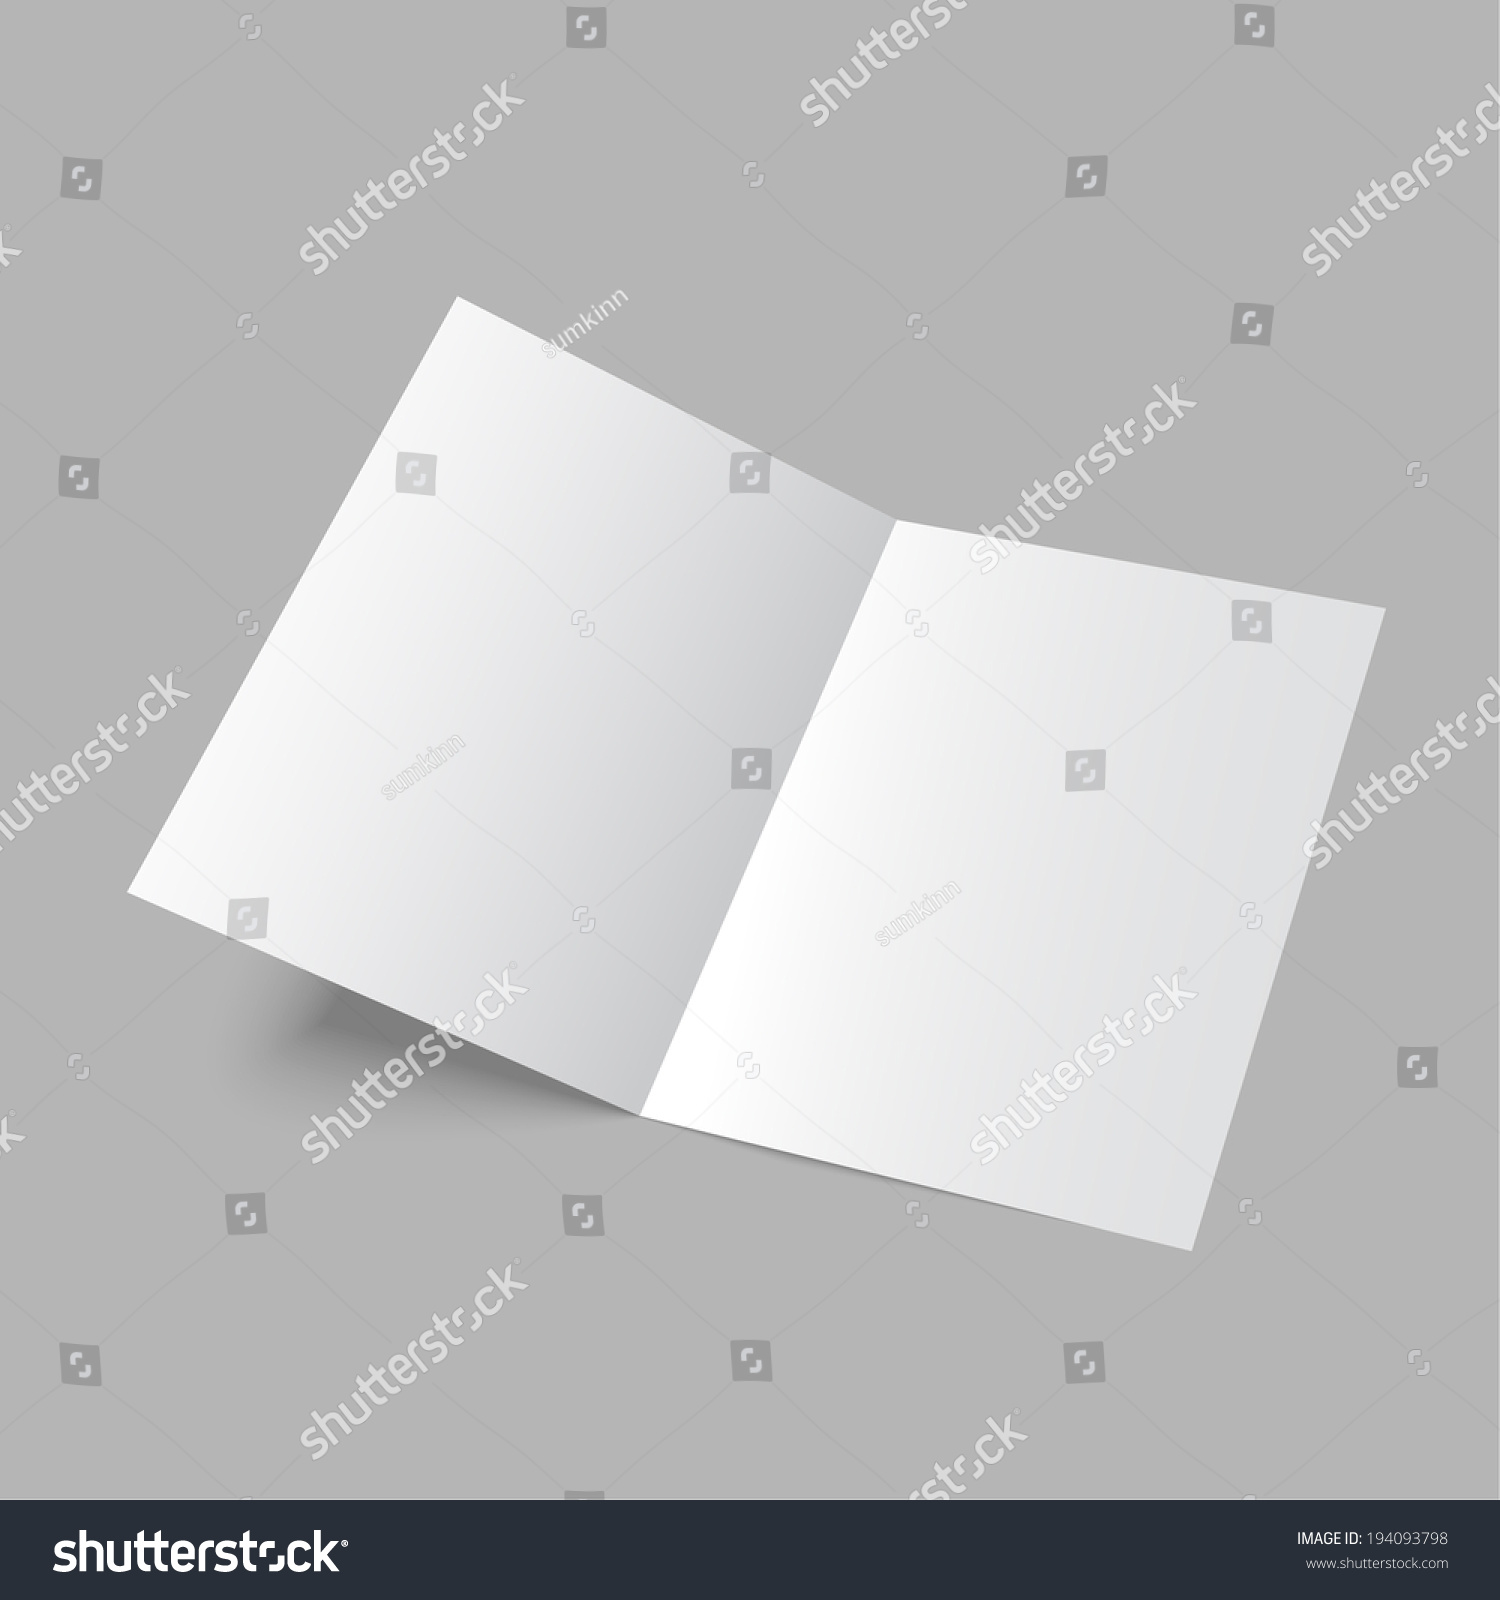 two fold brochure design - lying blank two fold paper brochure on gray background